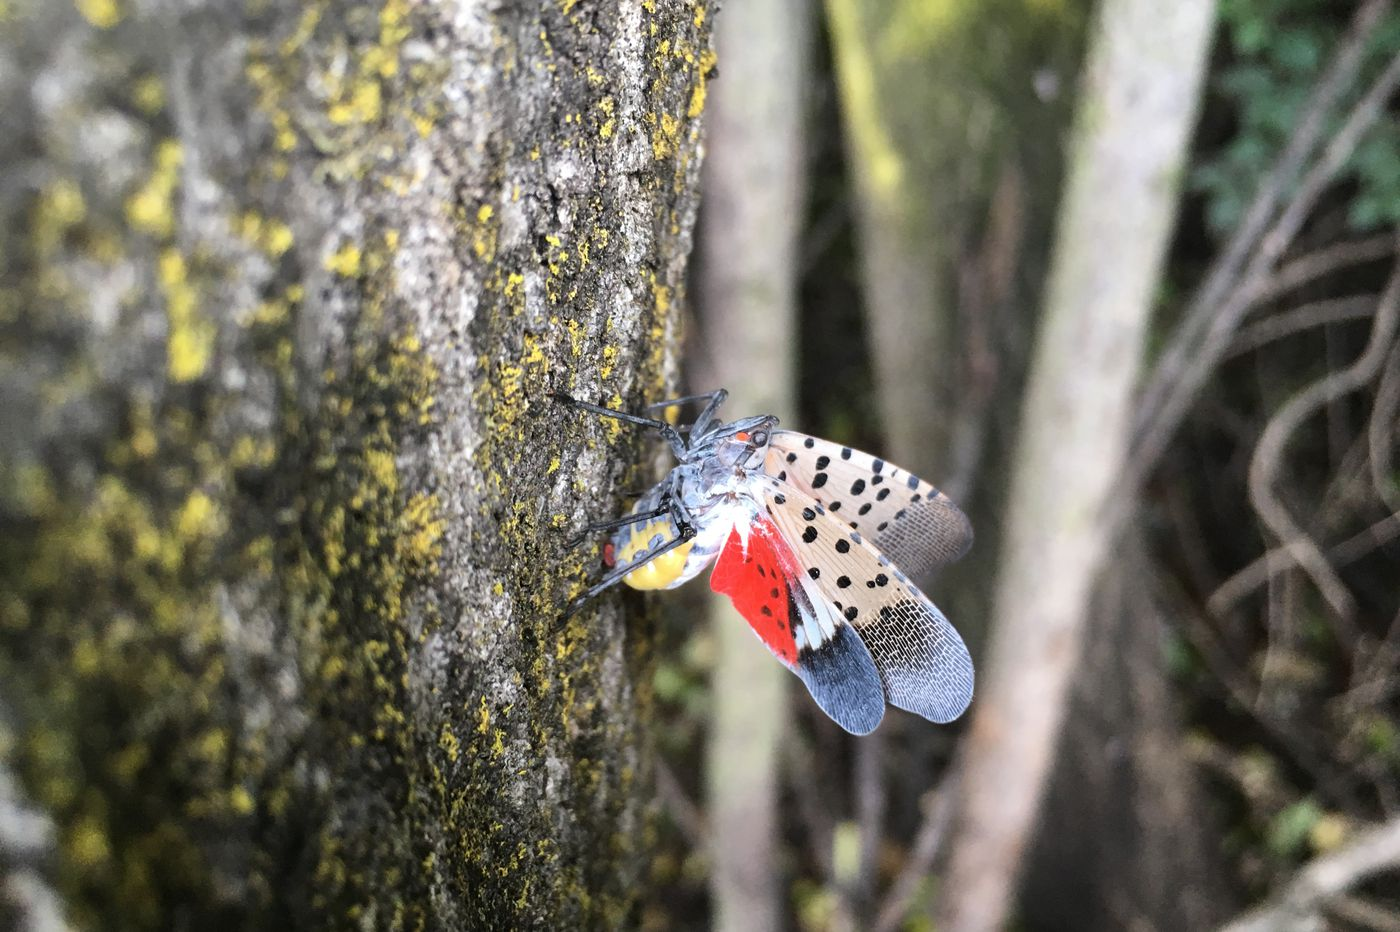 Philly cops: Please don't call 911 to report spotted lantern fly invasions